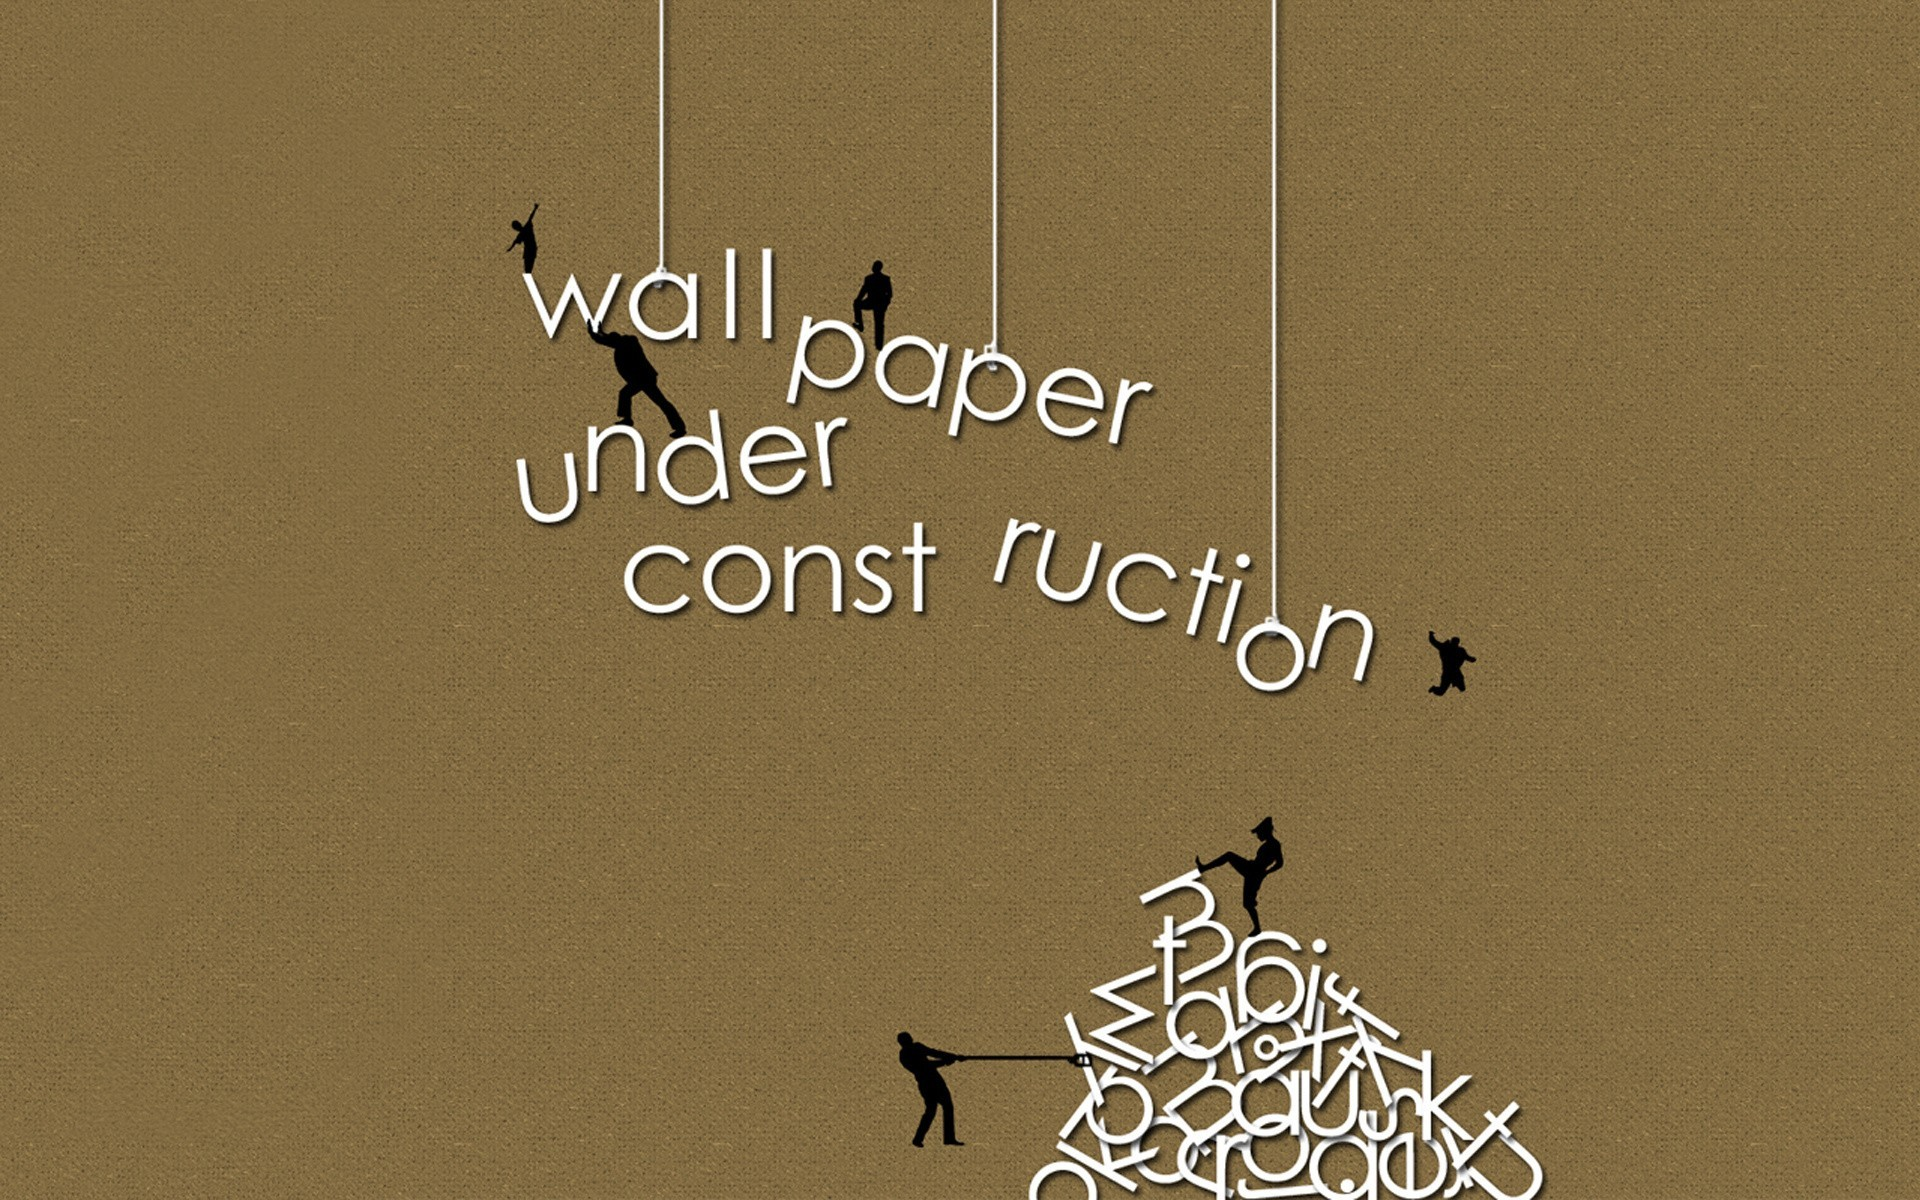 1920x1200 Wallpaper Under Construction wallpapers and stock photos